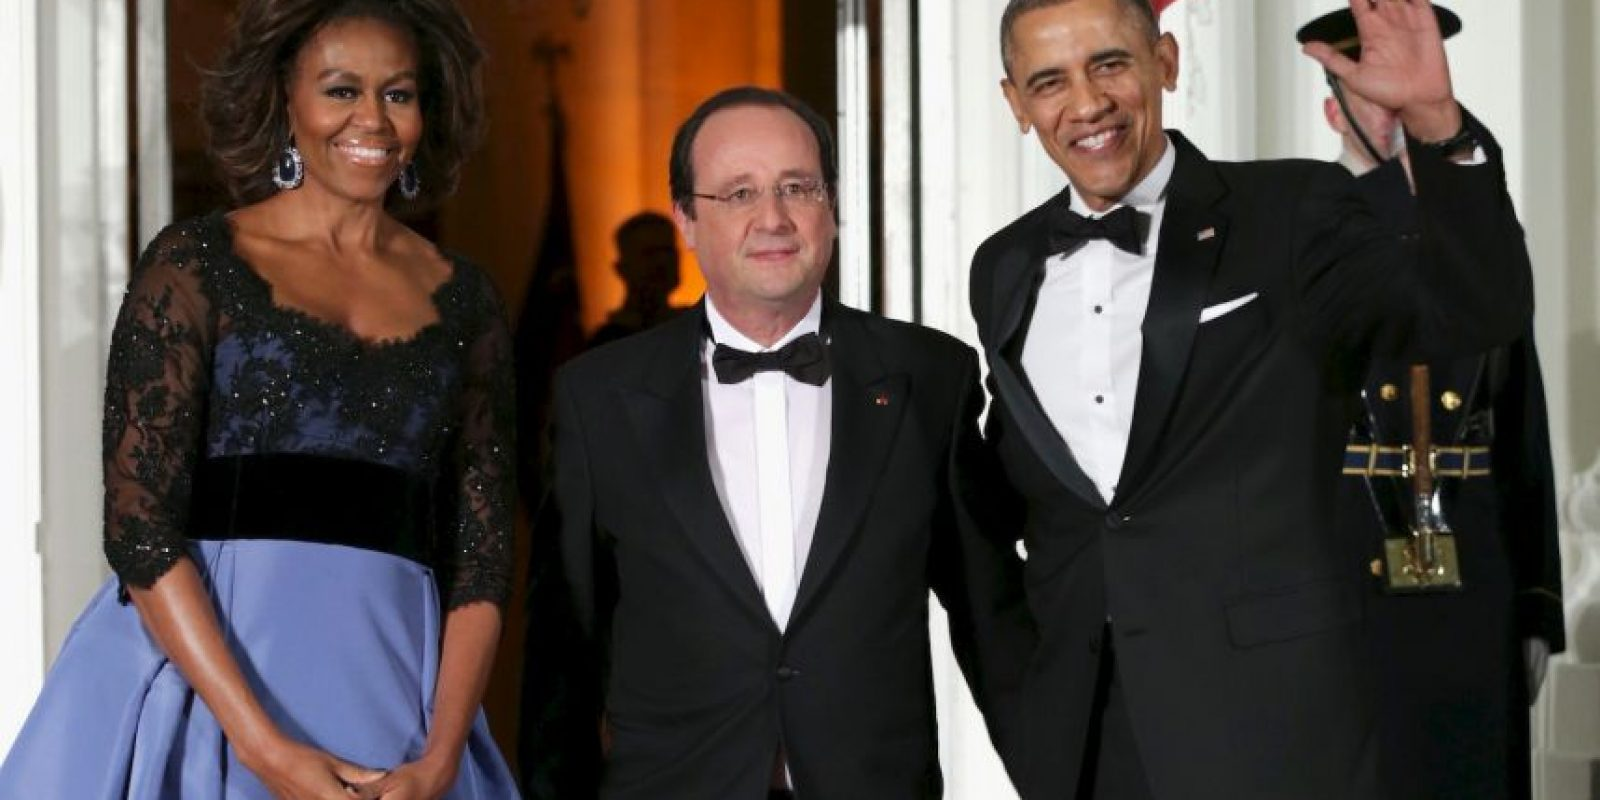 1. Francois Hollande Foto: Getty Images